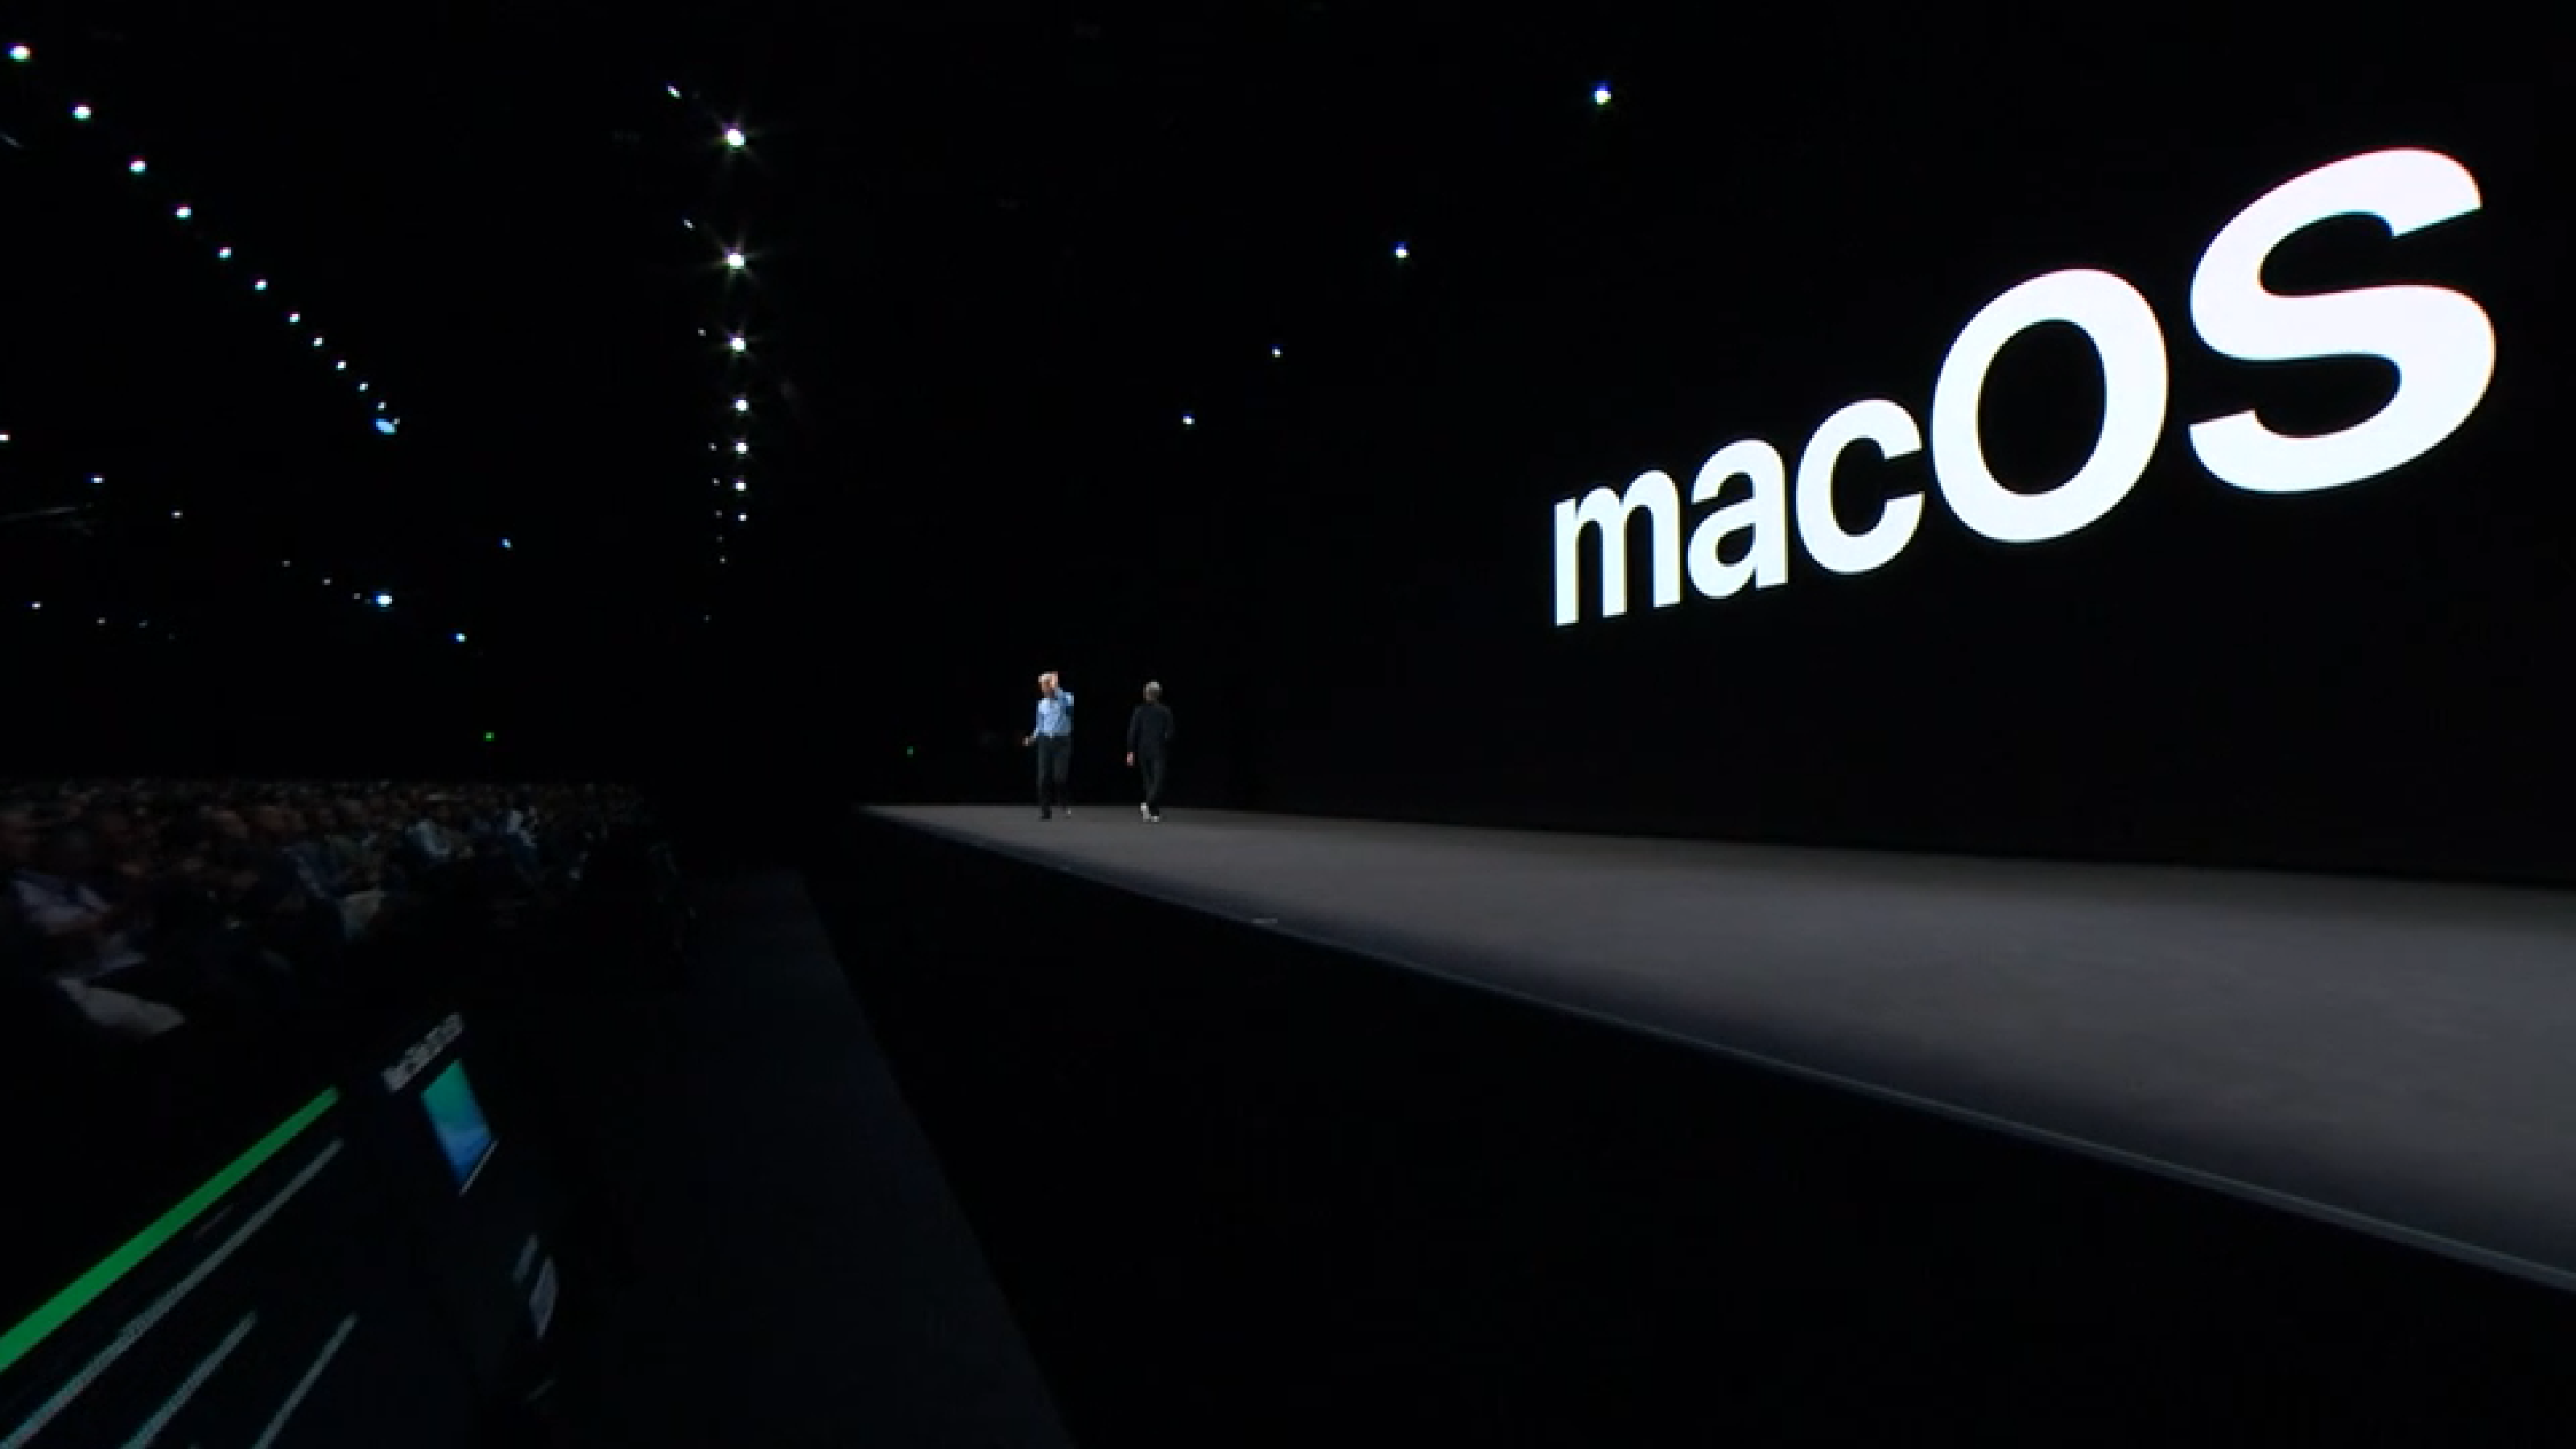 macOS 10.14 Mojave release date, news and features Mac